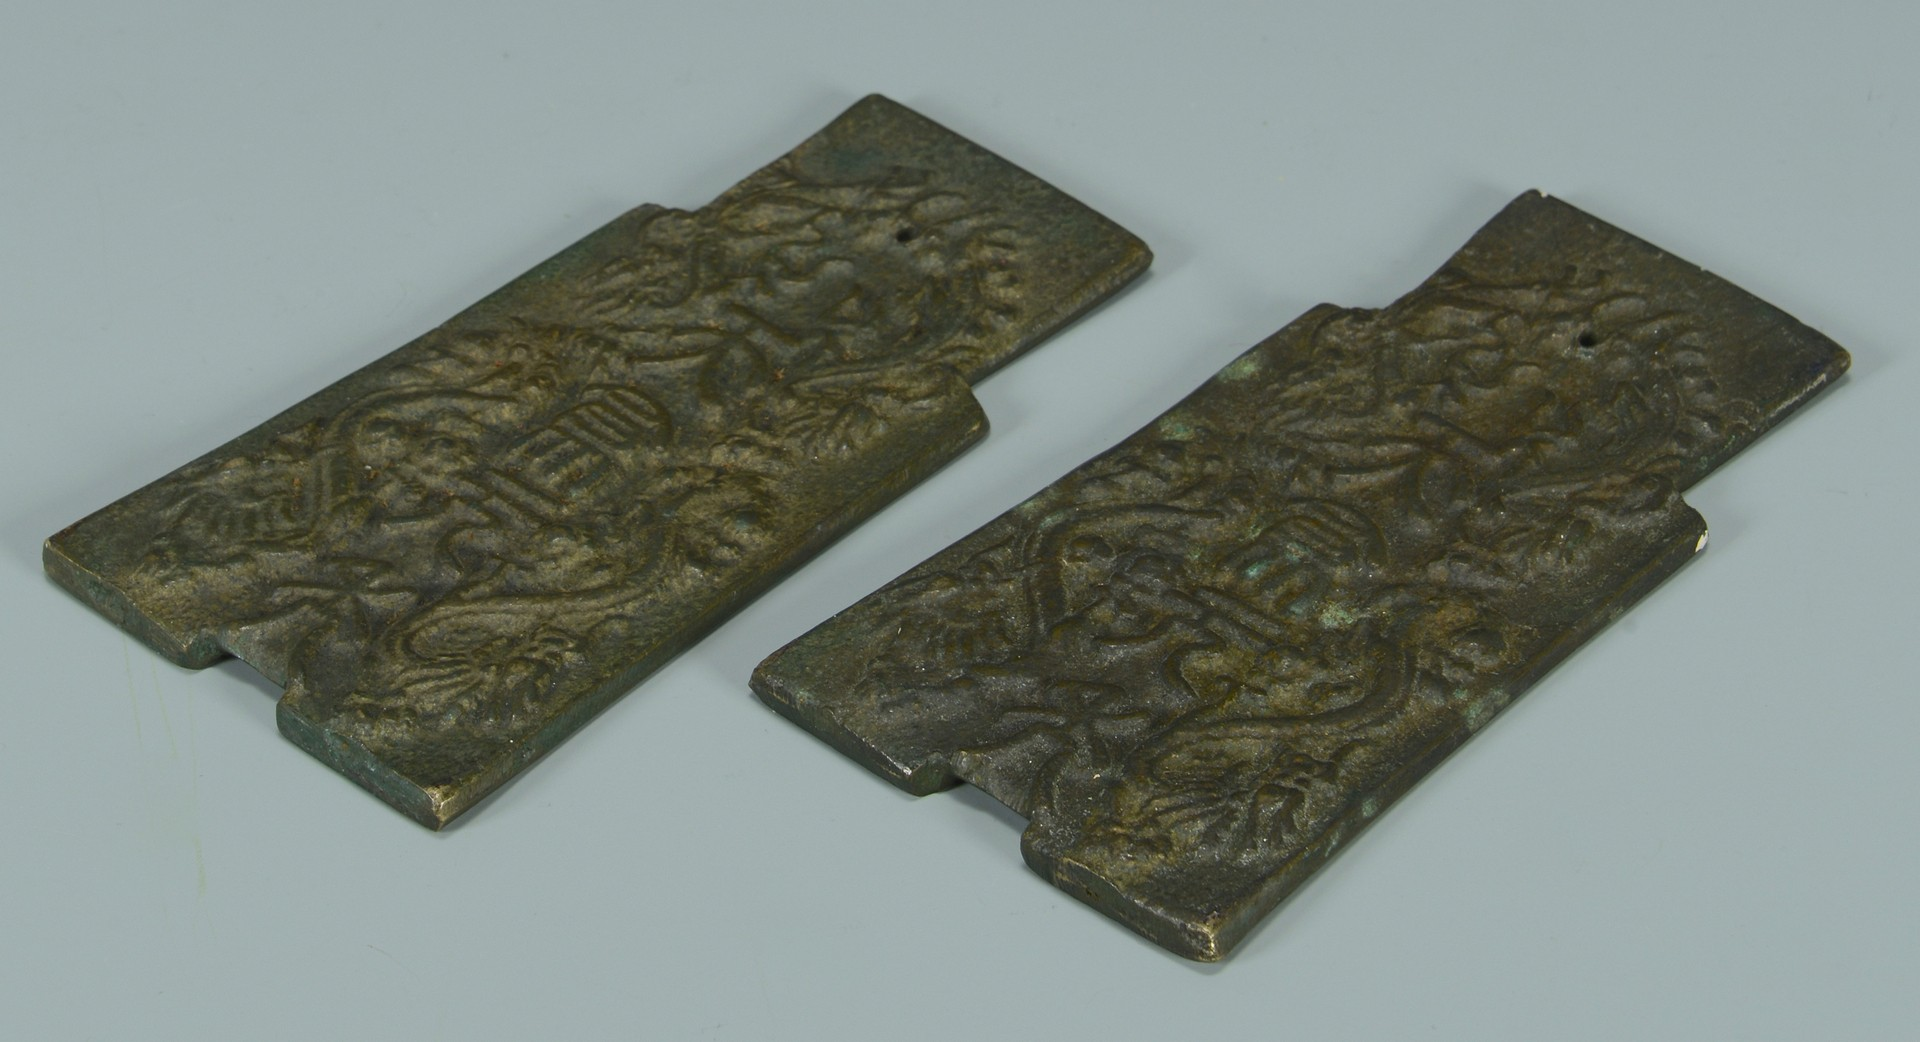 Lot 3594159: 3 Chinese Bronze Scholar's Table Items